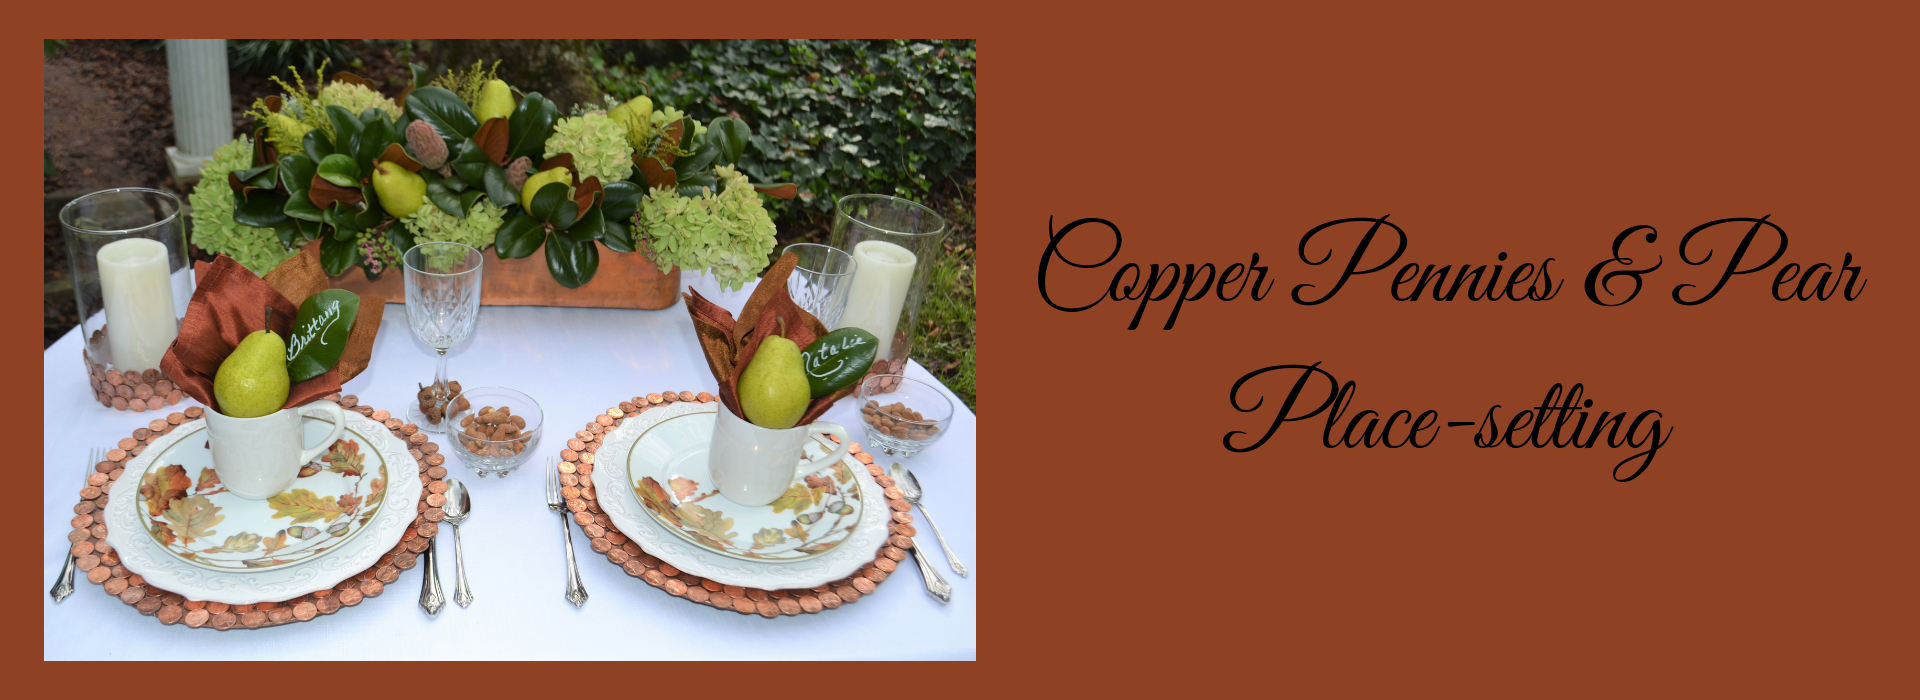 Slider- 1920 x 700 Copper Pennies & Pear Place setting